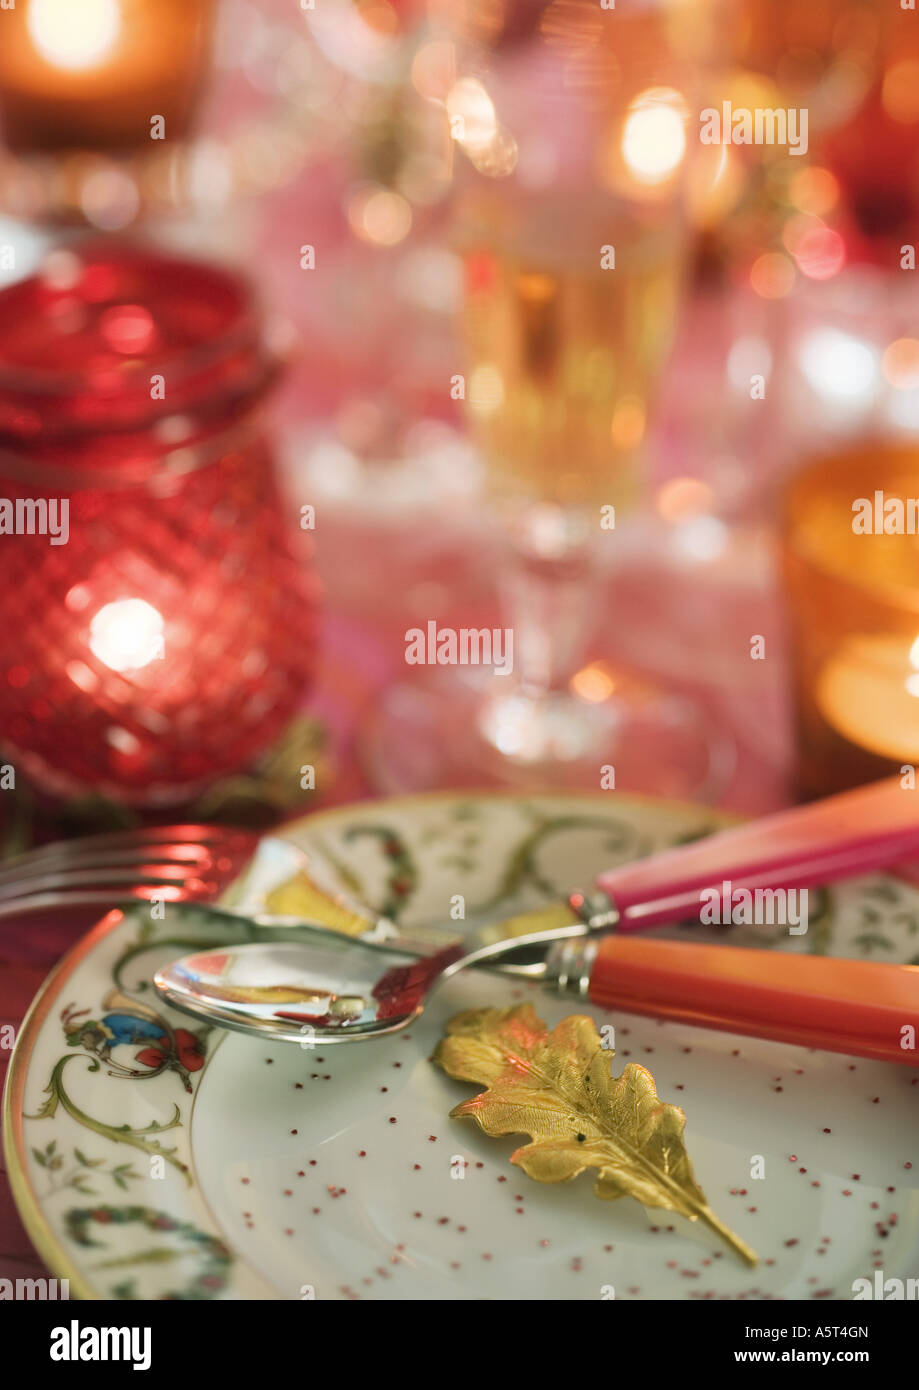 Decorated table with place settings - Stock Image